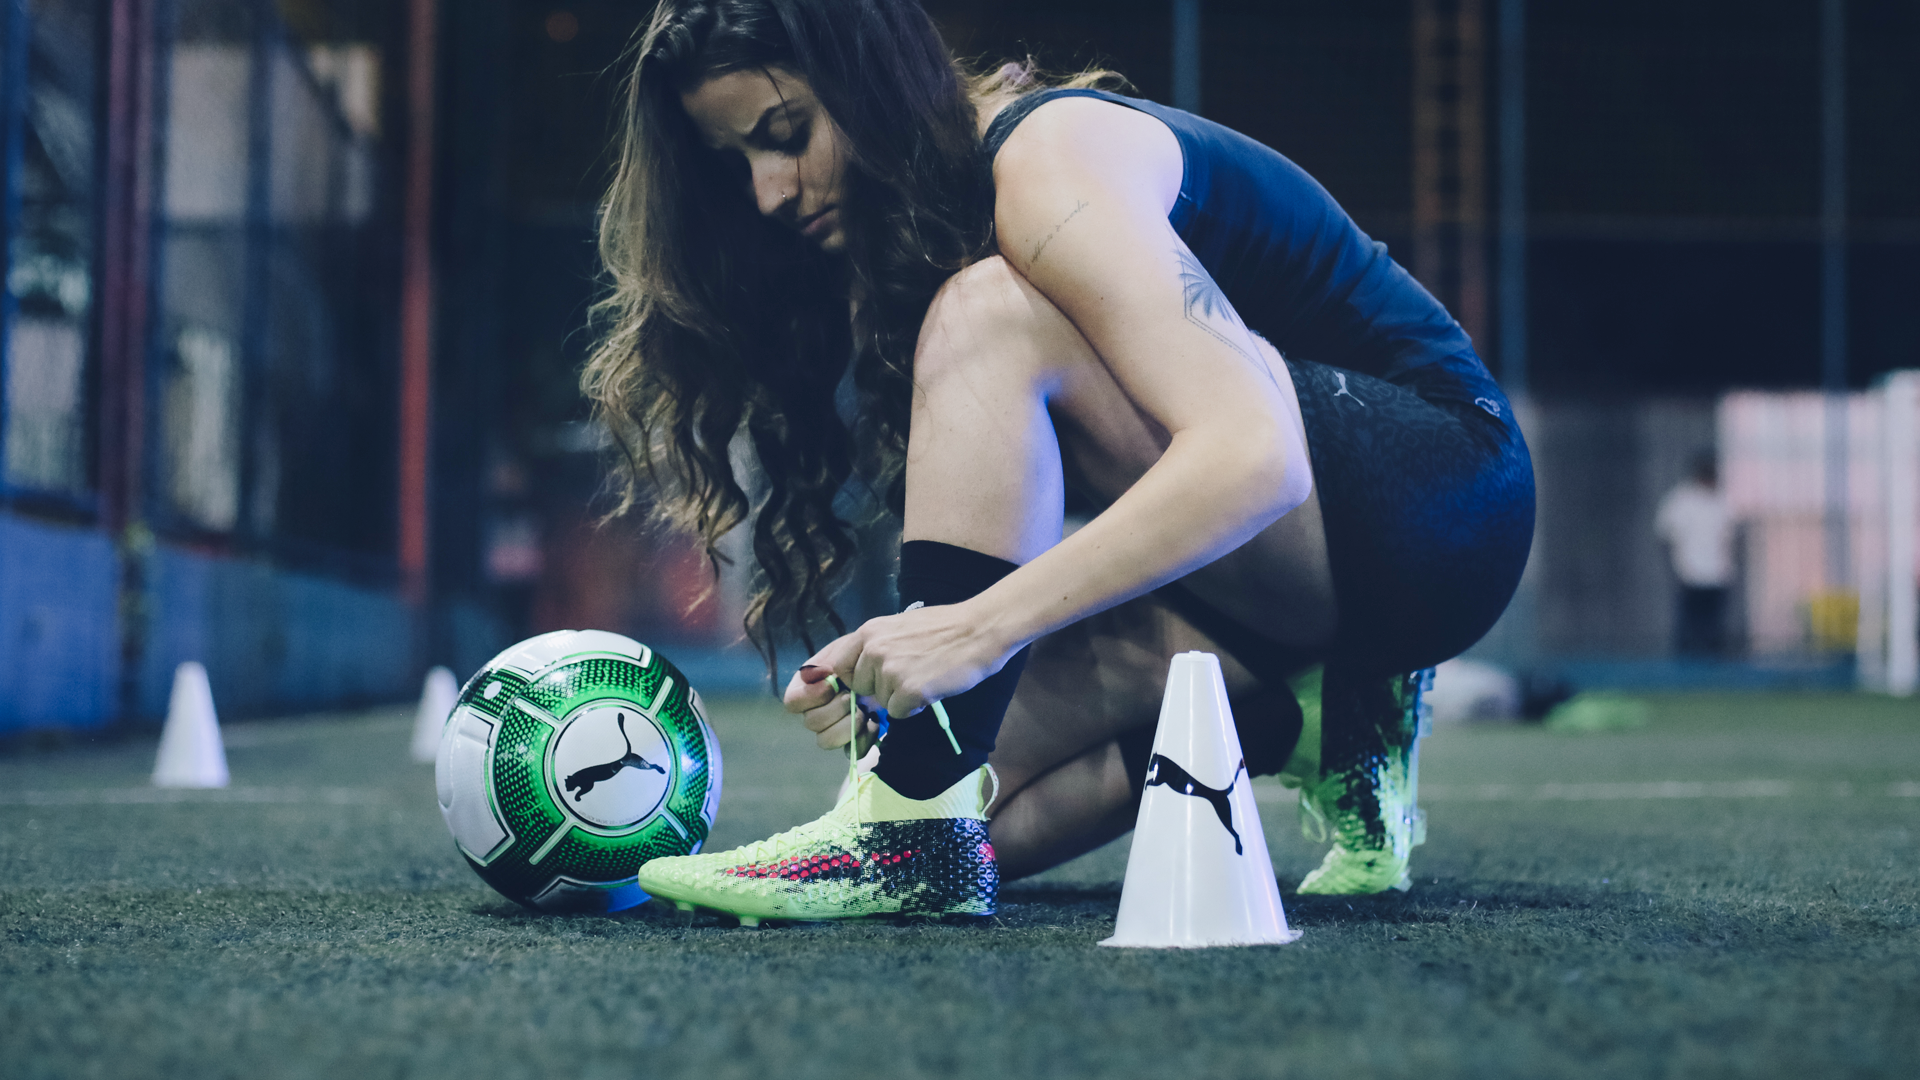 Puma ↳A women's empowerment movement that connects them to play football together.